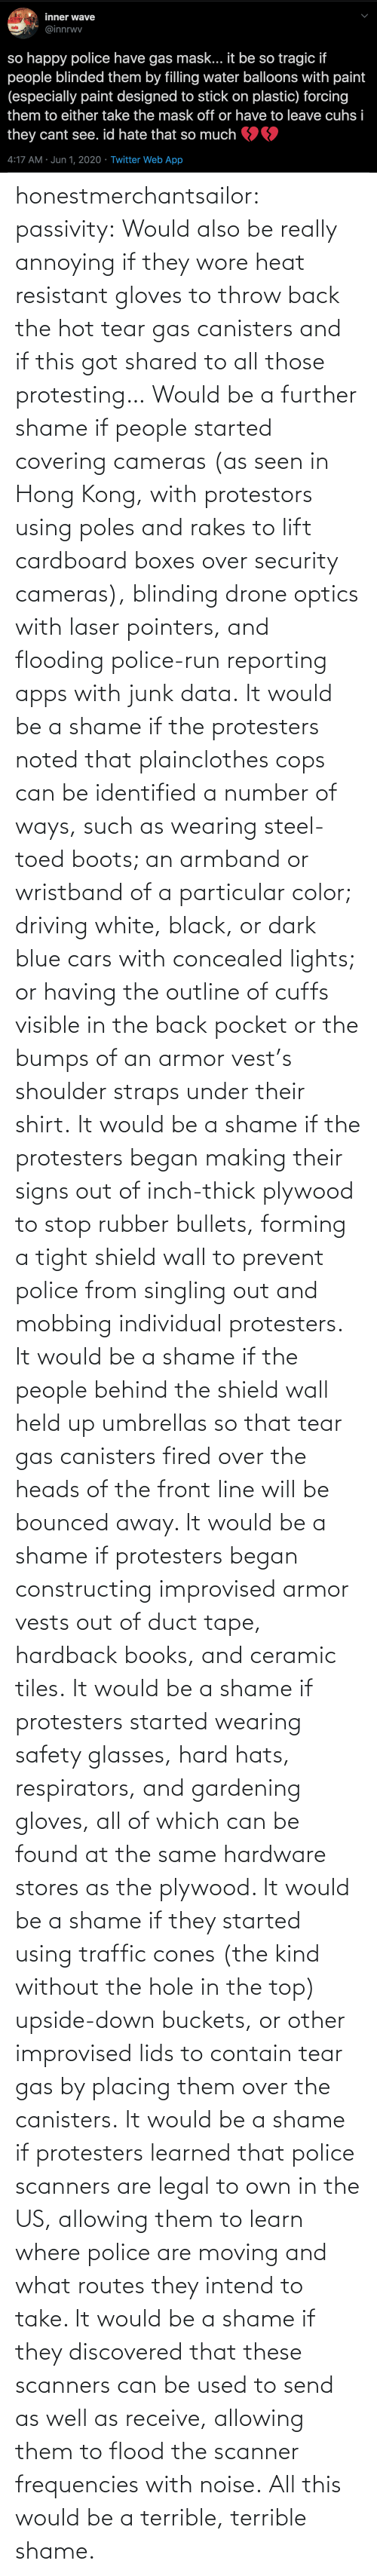 got: honestmerchantsailor:  passivity: Would also be really annoying if they wore heat resistant gloves to throw back the hot tear gas canisters and if this got shared to all those protesting… Would be a further shame if people started covering cameras (as seen in Hong Kong, with protestors using poles and rakes to lift cardboard boxes over security cameras), blinding drone optics with laser pointers, and flooding police-run reporting apps with junk data. It would be a shame if the protesters noted that plainclothes cops can be identified a number of ways, such as wearing steel-toed boots; an armband or wristband of a particular color; driving white, black, or dark blue cars with concealed lights; or having the outline of cuffs visible in the back pocket or the bumps of an armor vest's shoulder straps under their shirt. It would be a shame if the protesters began making their signs out of inch-thick plywood to stop rubber bullets, forming a tight shield wall to prevent police from singling out and mobbing individual protesters. It would be a shame if the people behind the shield wall held up umbrellas so that tear gas canisters fired over the heads of the front line will be bounced away. It would be a shame if protesters began constructing improvised armor vests out of duct tape, hardback books, and ceramic tiles. It would be a shame if protesters started wearing safety glasses, hard hats, respirators, and gardening gloves, all of which can be found at the same hardware stores as the plywood. It would be a shame if they started using traffic cones (the kind without the hole in the top) upside-down buckets, or other improvised lids to contain tear gas by placing them over the canisters. It would be a shame if protesters learned that police scanners are legal to own in the US, allowing them to learn where police are moving and what routes they intend to take. It would be a shame if they discovered that these scanners can be used to send as well as receive, allowing them to flood the scanner frequencies with noise. All this would be a terrible, terrible shame.